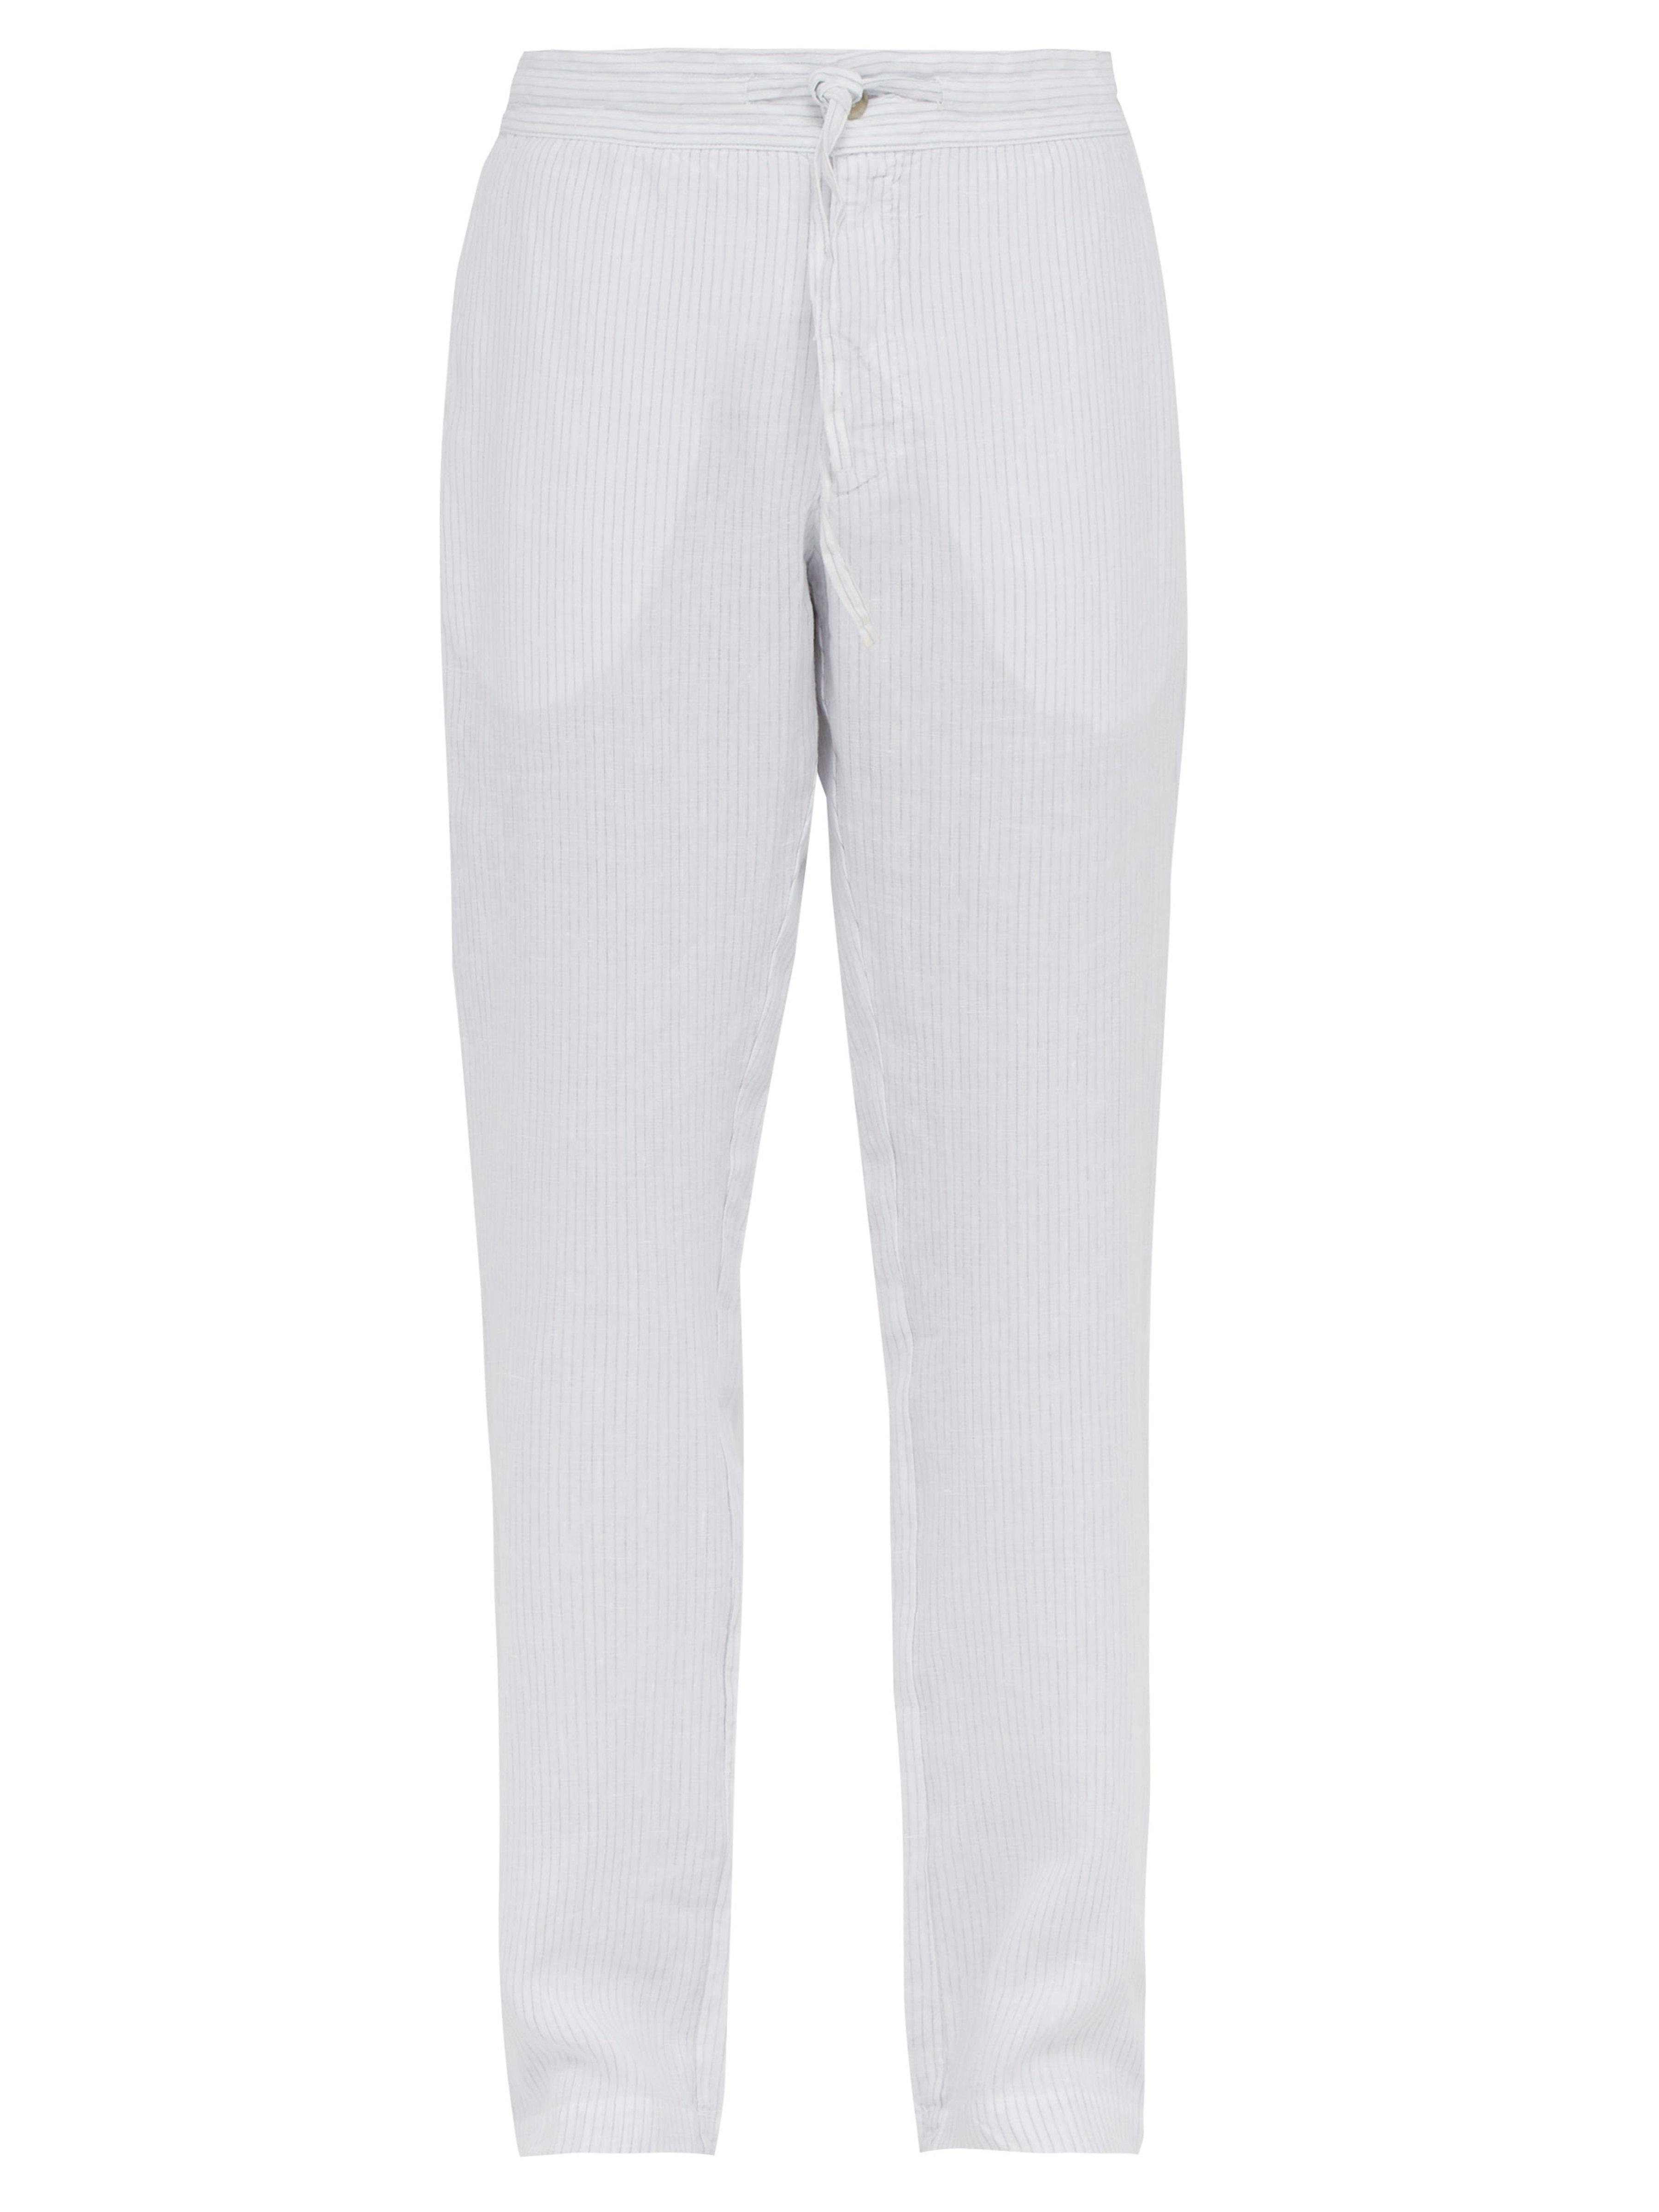 dd48c05e88 120% Lino Striped Slubbed Linen Relaxed Fit Trousers in White for ...